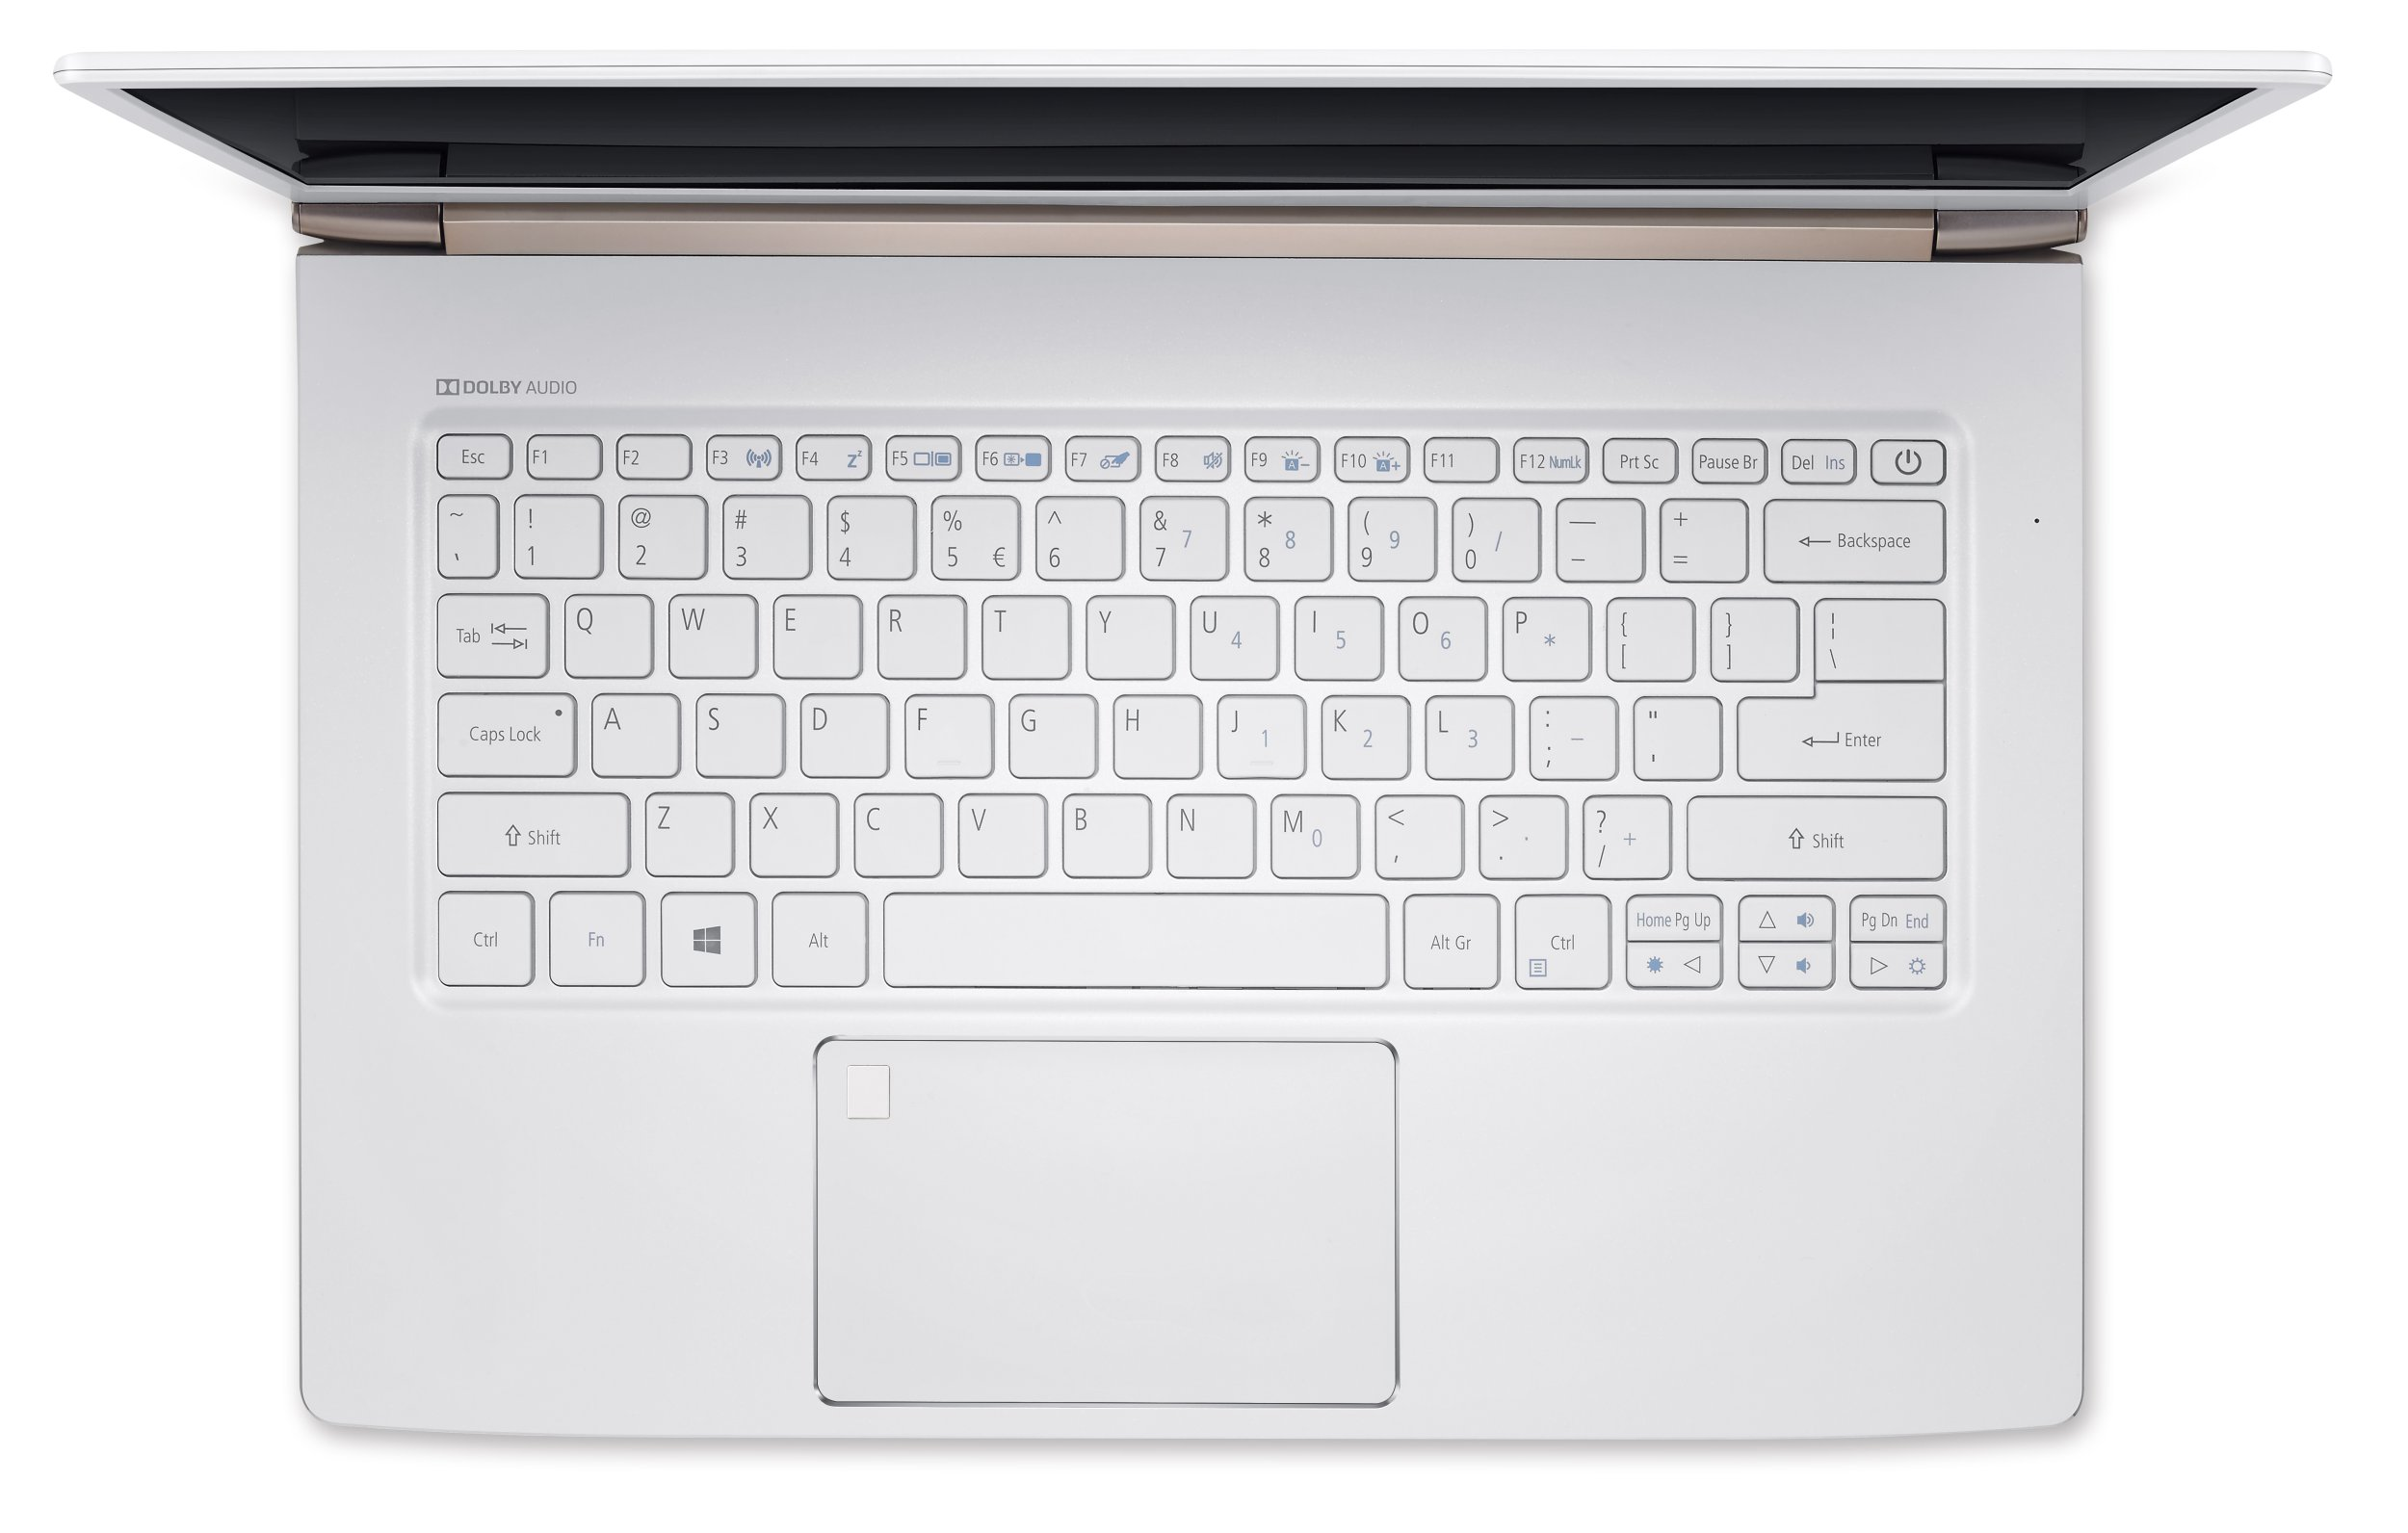 "Acer Swift 5 (SF514-51-753Z) i7-7500U/8 GB+N/512GB PCIe SSD M.2+N/A/HD Graphics /14"" FHD lesklý IPS/W10 Home/White"